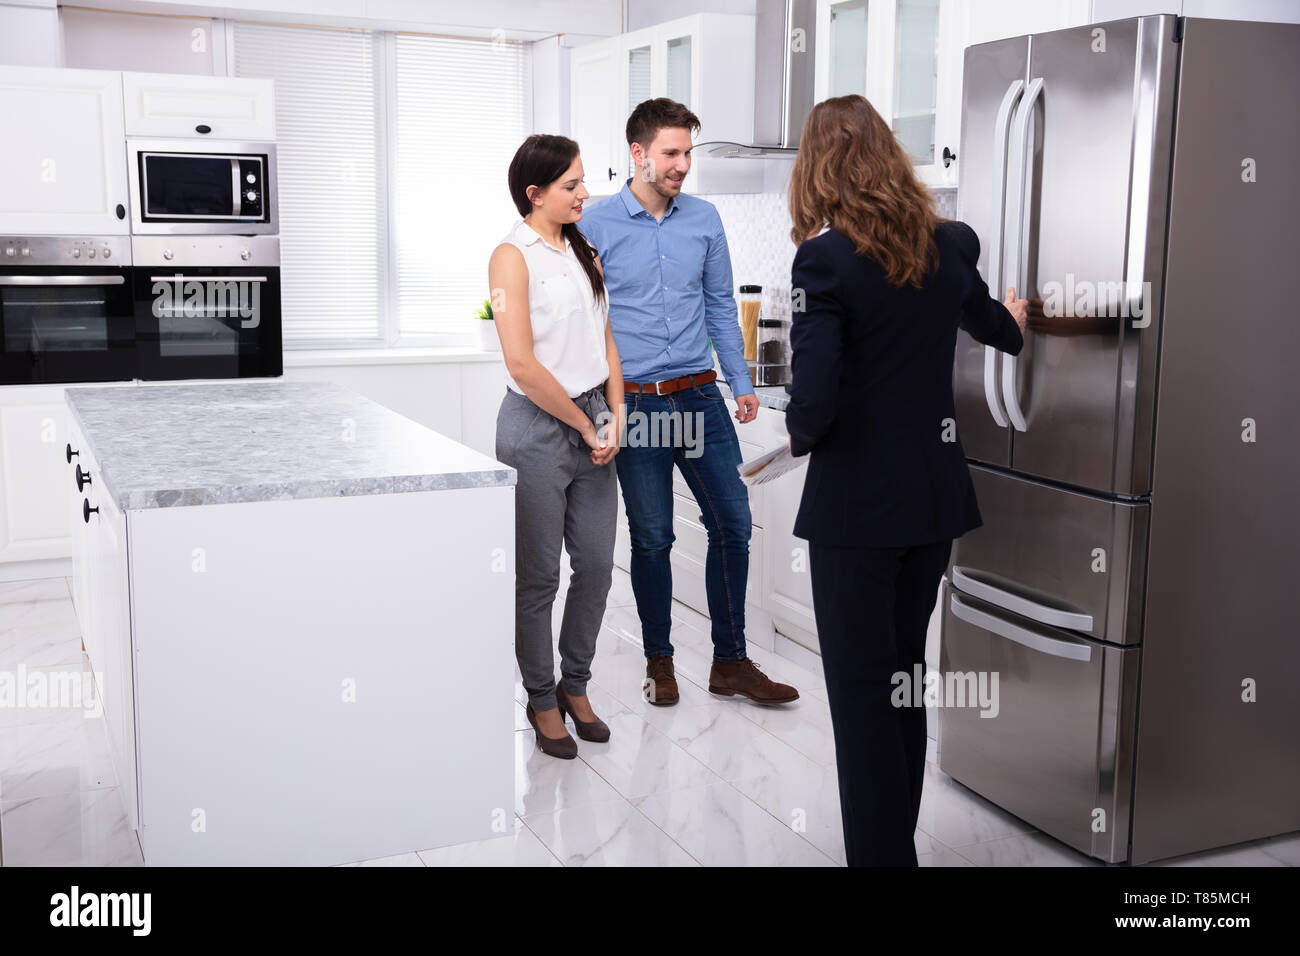 Professional Real Estate Agent Showing Refrigerator In House To A Young Couple Stock Photo